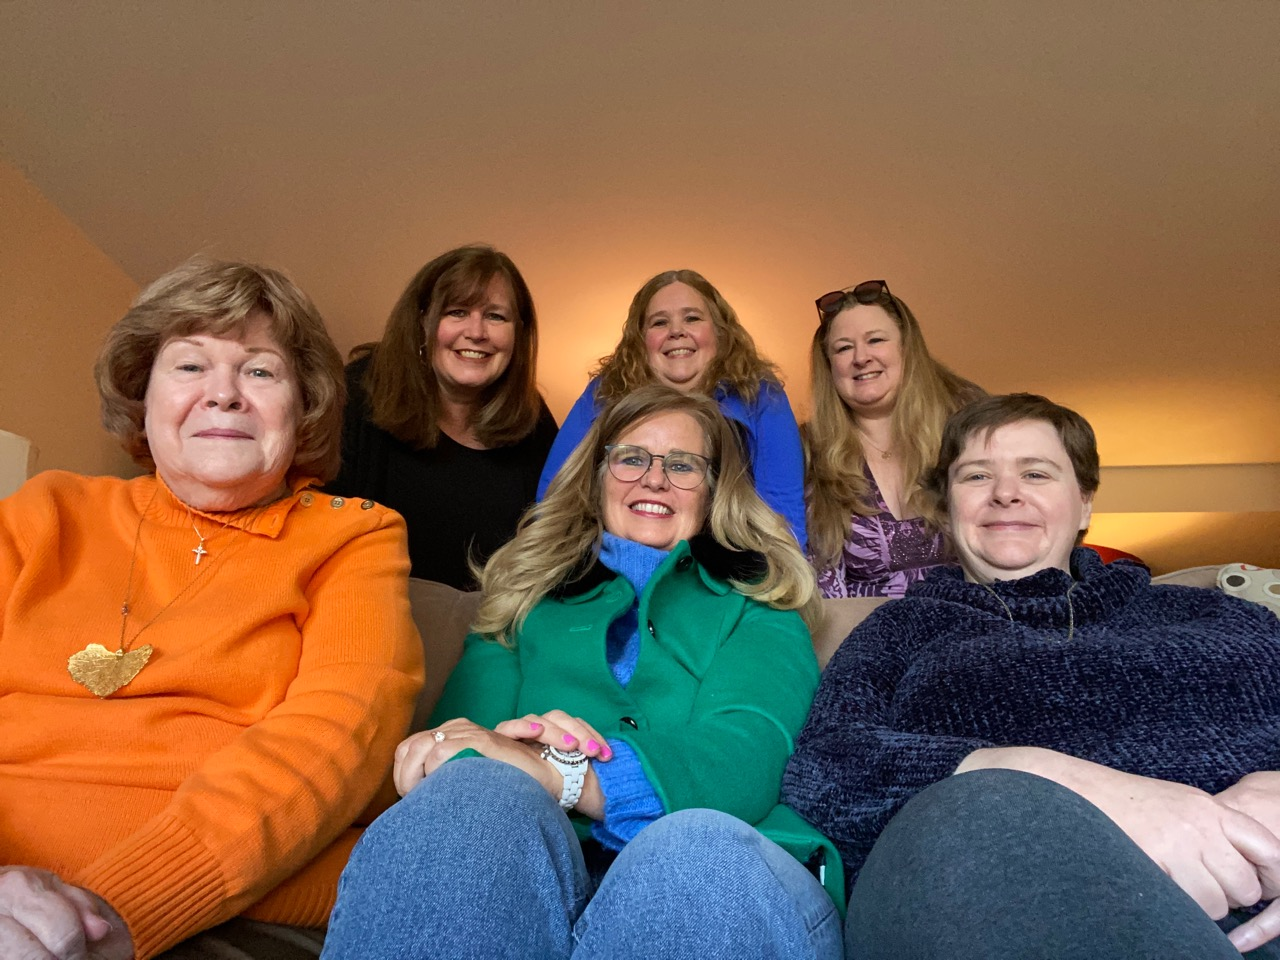 A photo of six women with three sitting on the couch and three standing behind them.